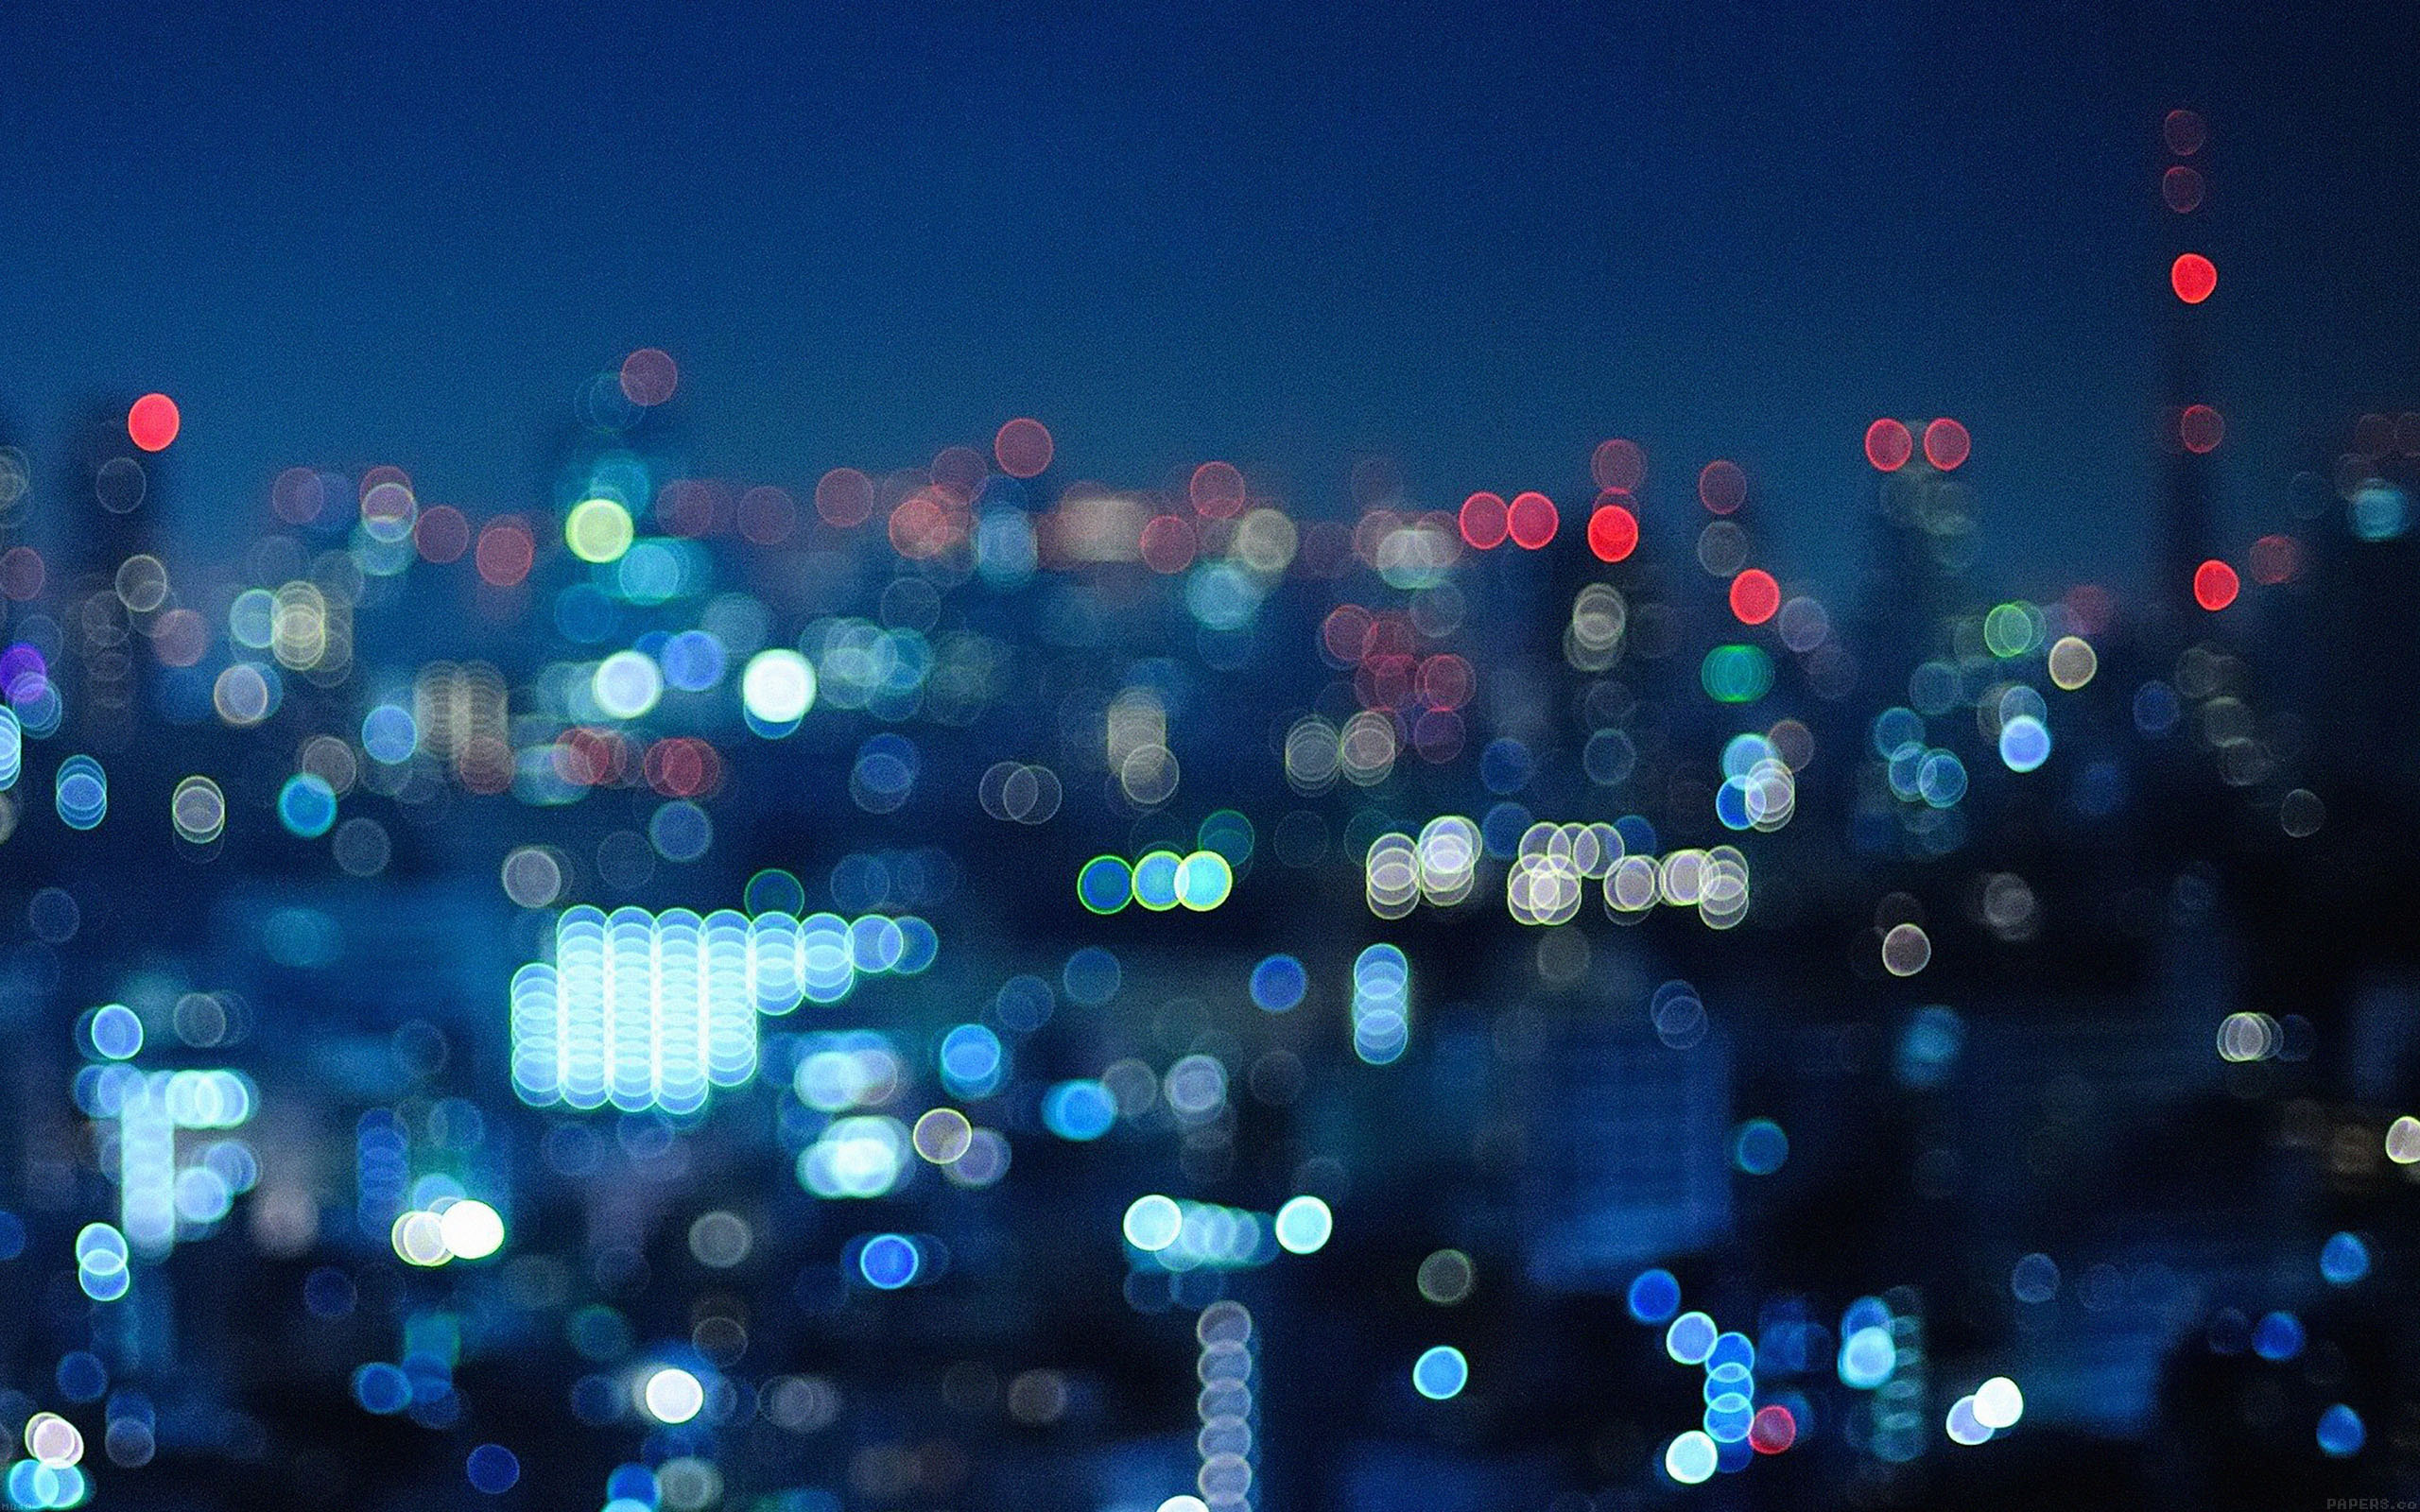 md40-wallpaper-crying-city-night-bokeh-wallpaper